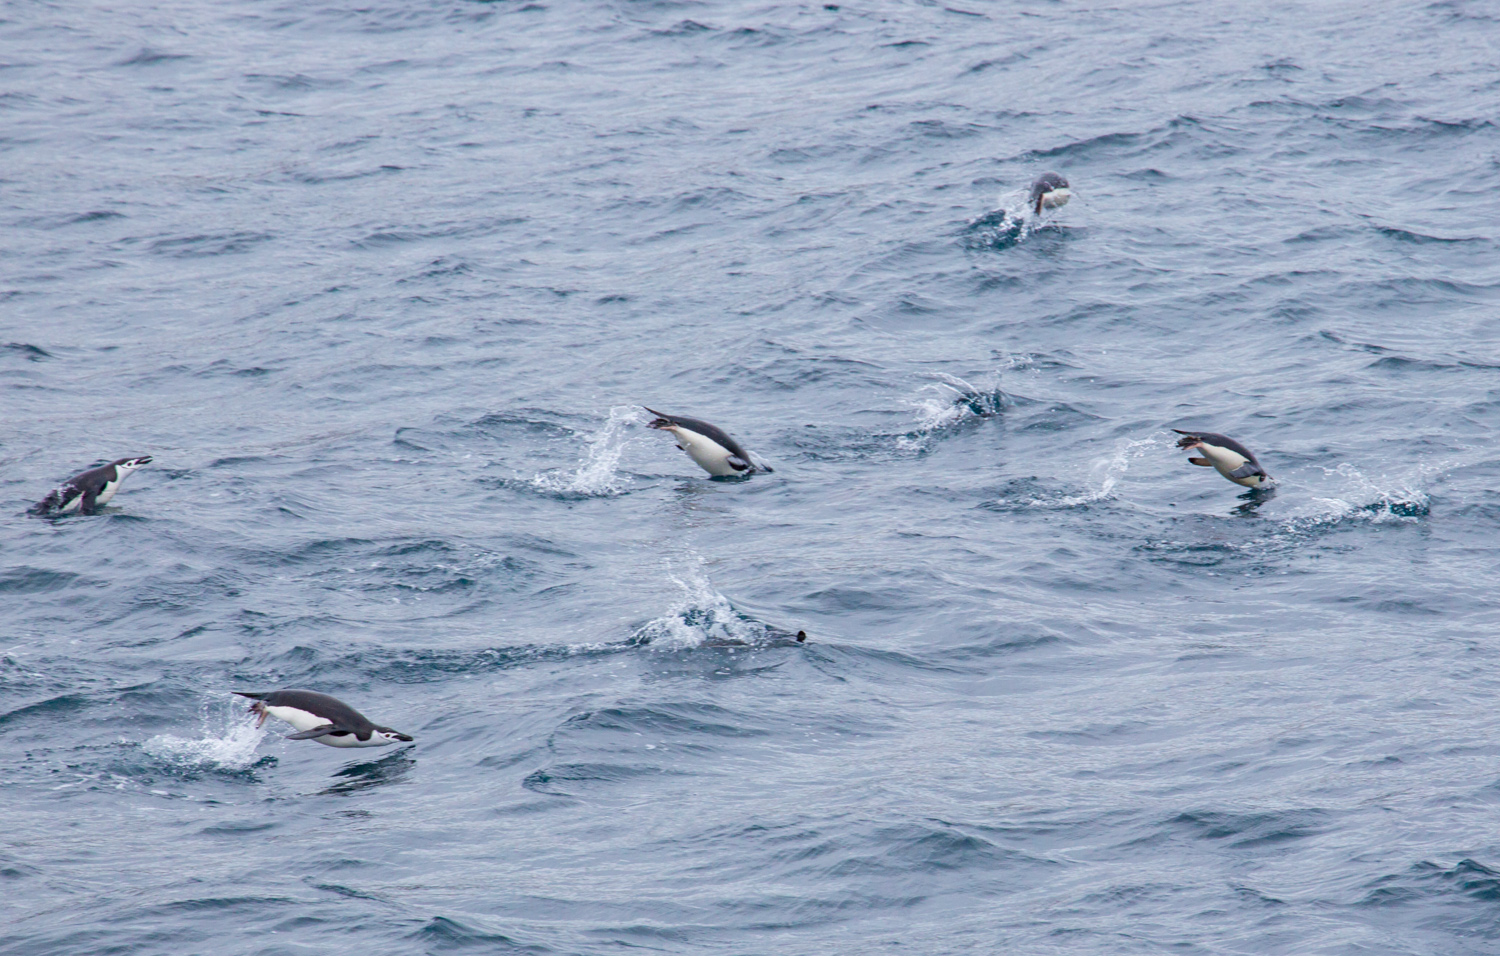 Chinstrap penguins swimming in the Bransfield Strait, near the South Shetland Islands.